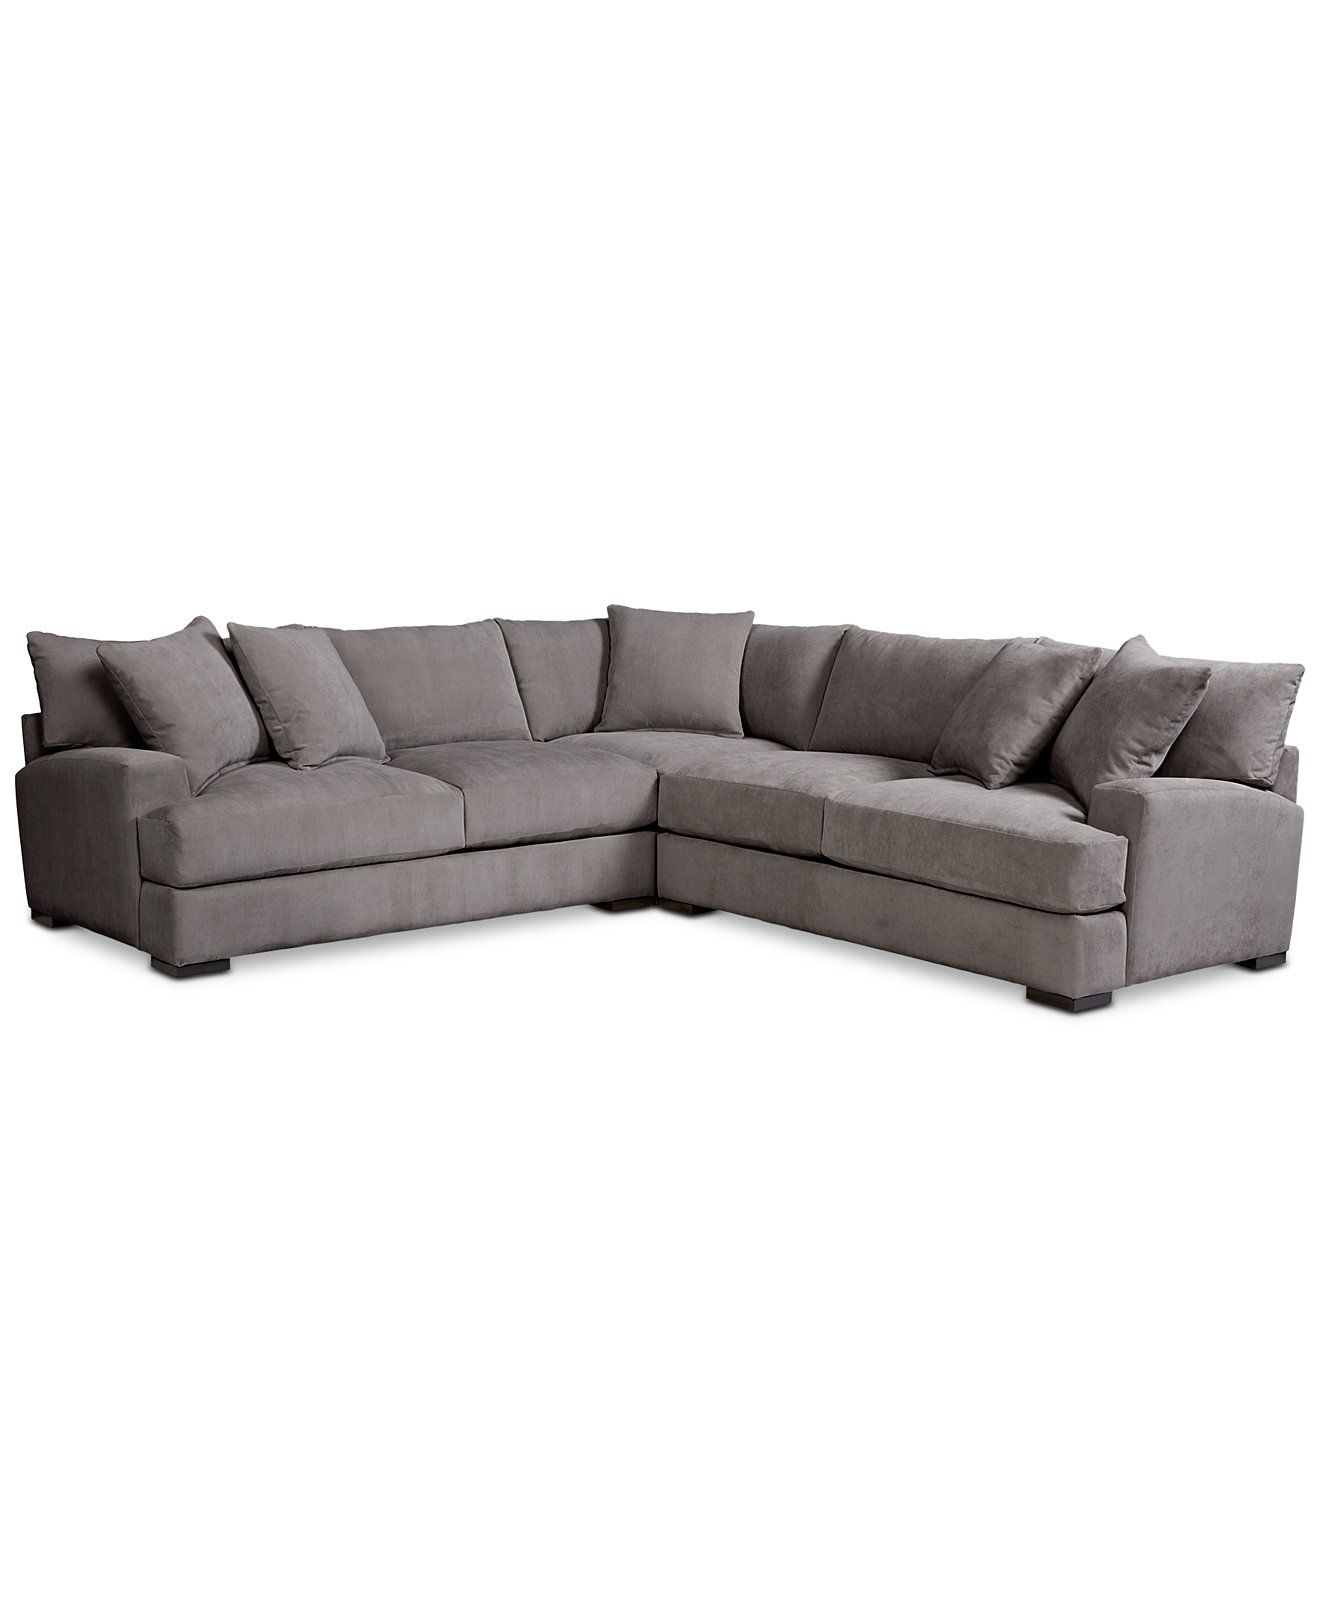 Rhyder 3 Pc L Shaped Fabric Sectional